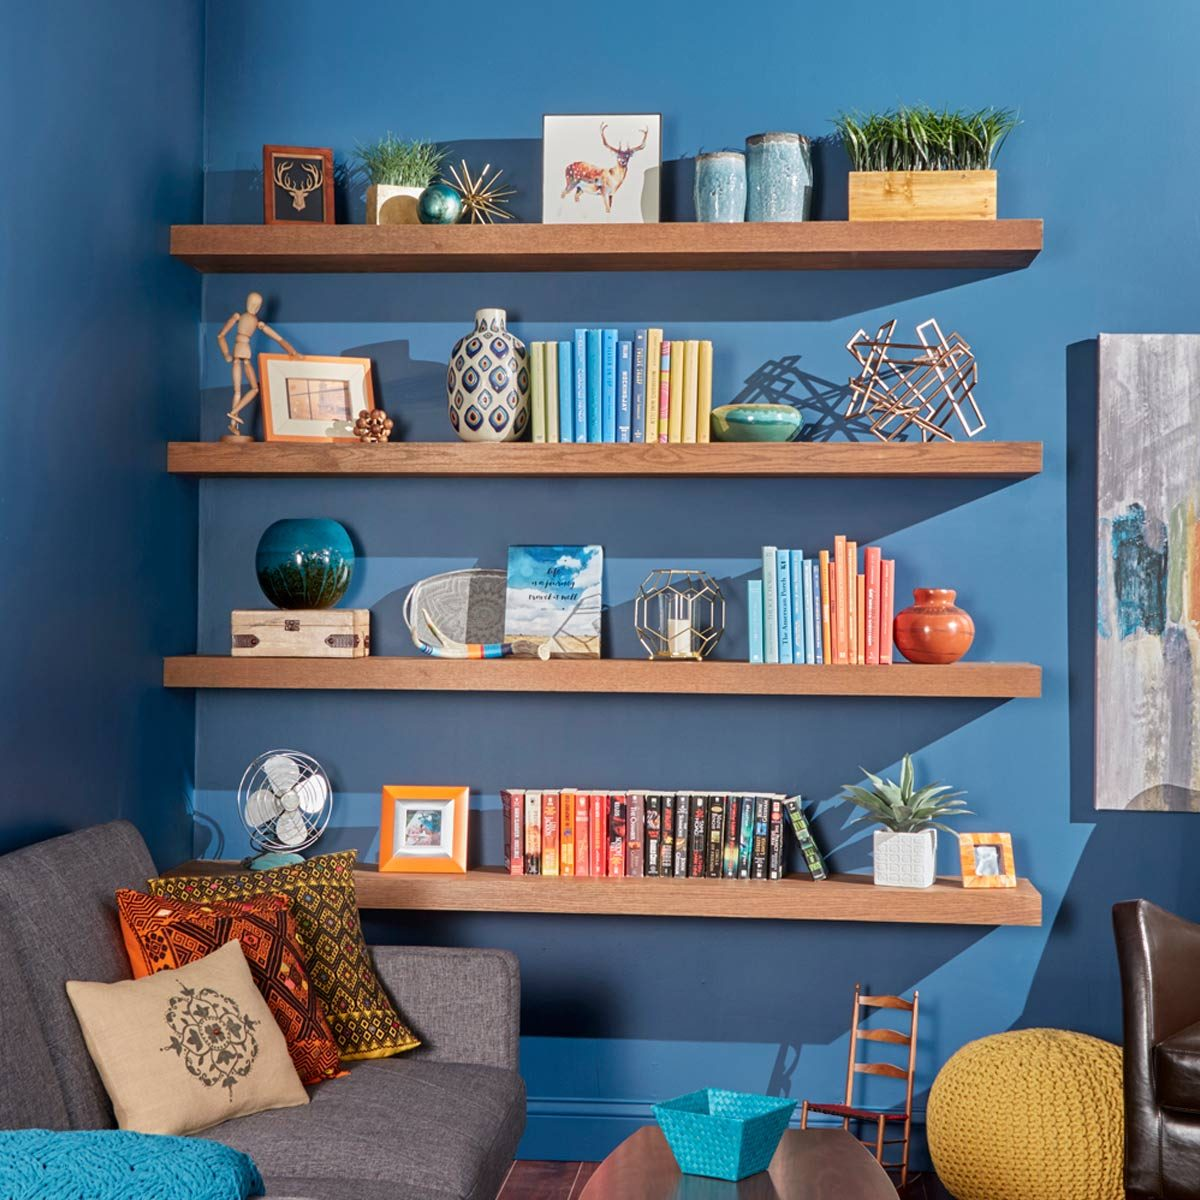 How To Build Floating Shelves — The Family Handyman